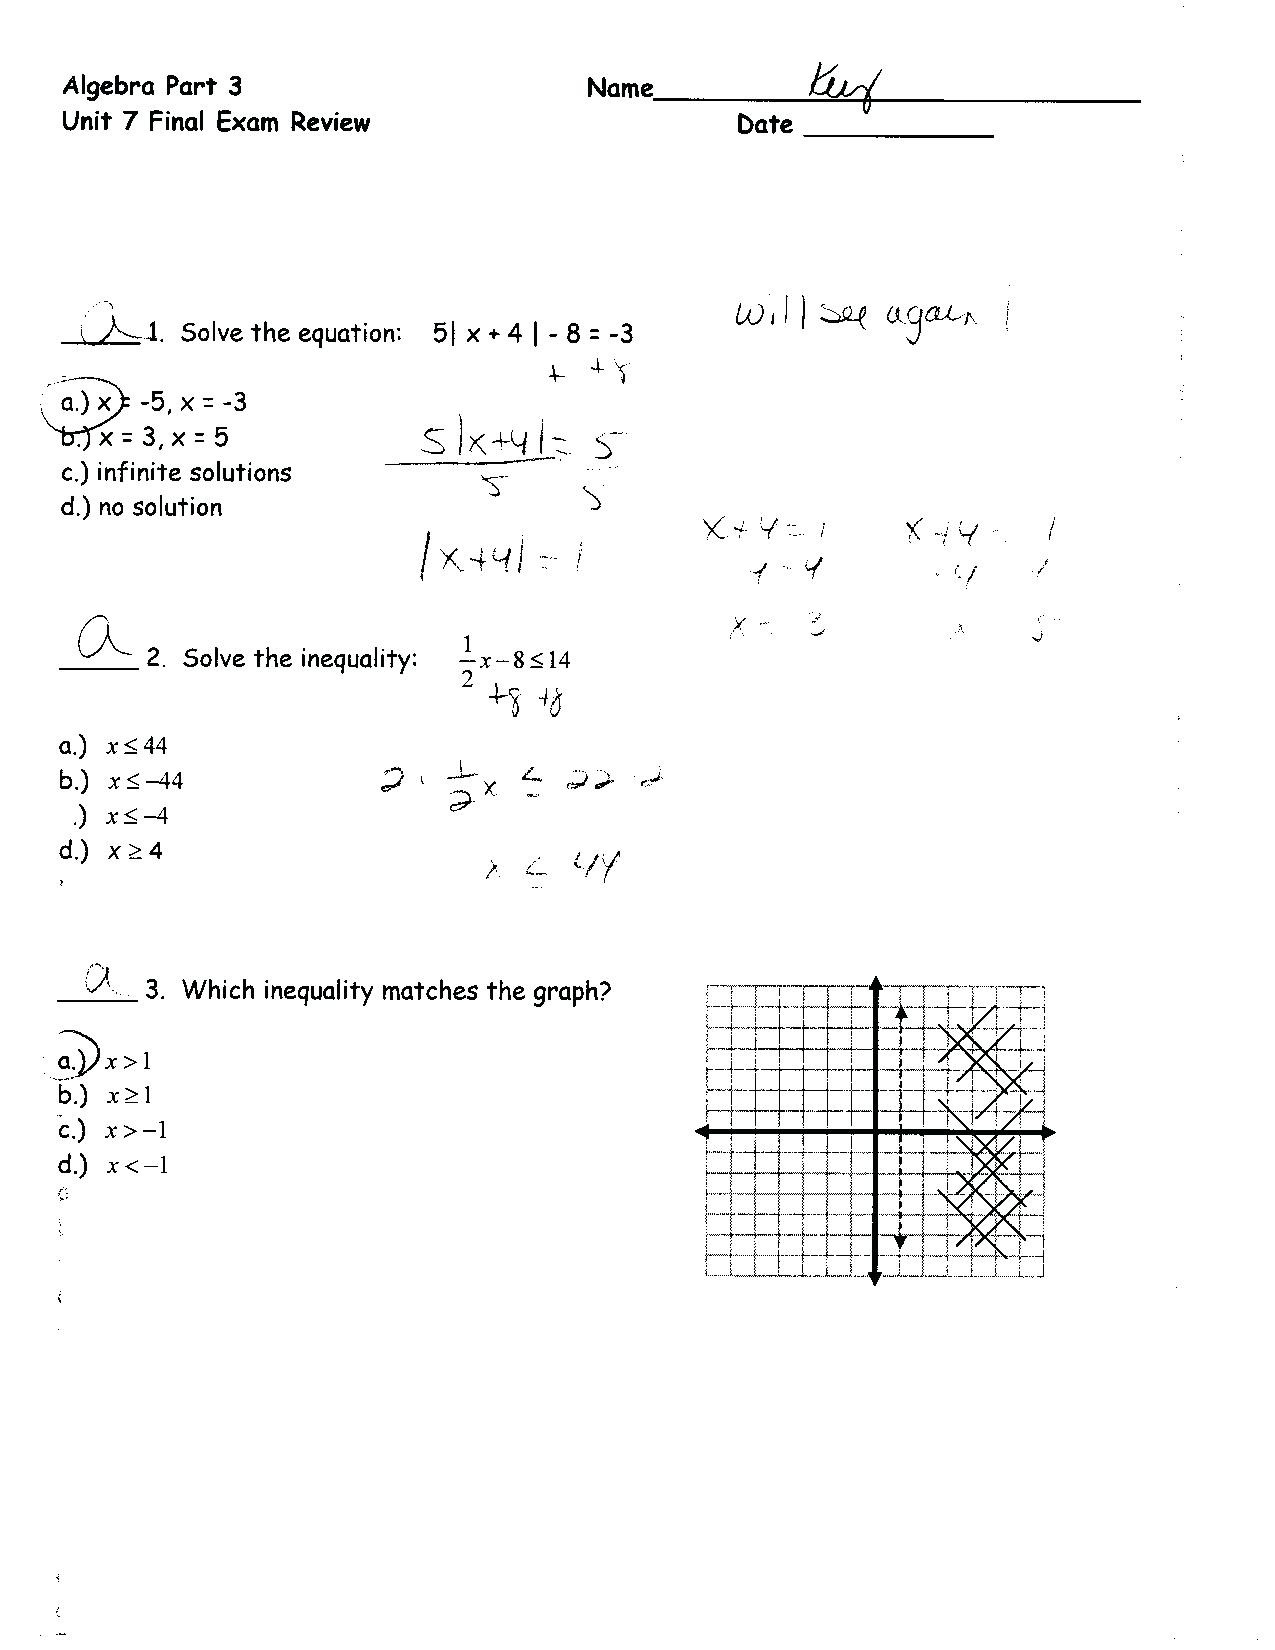 Linear Equations and Inequalities Worksheet Equations and Inequalities Worksheet with Answers Nidecmege